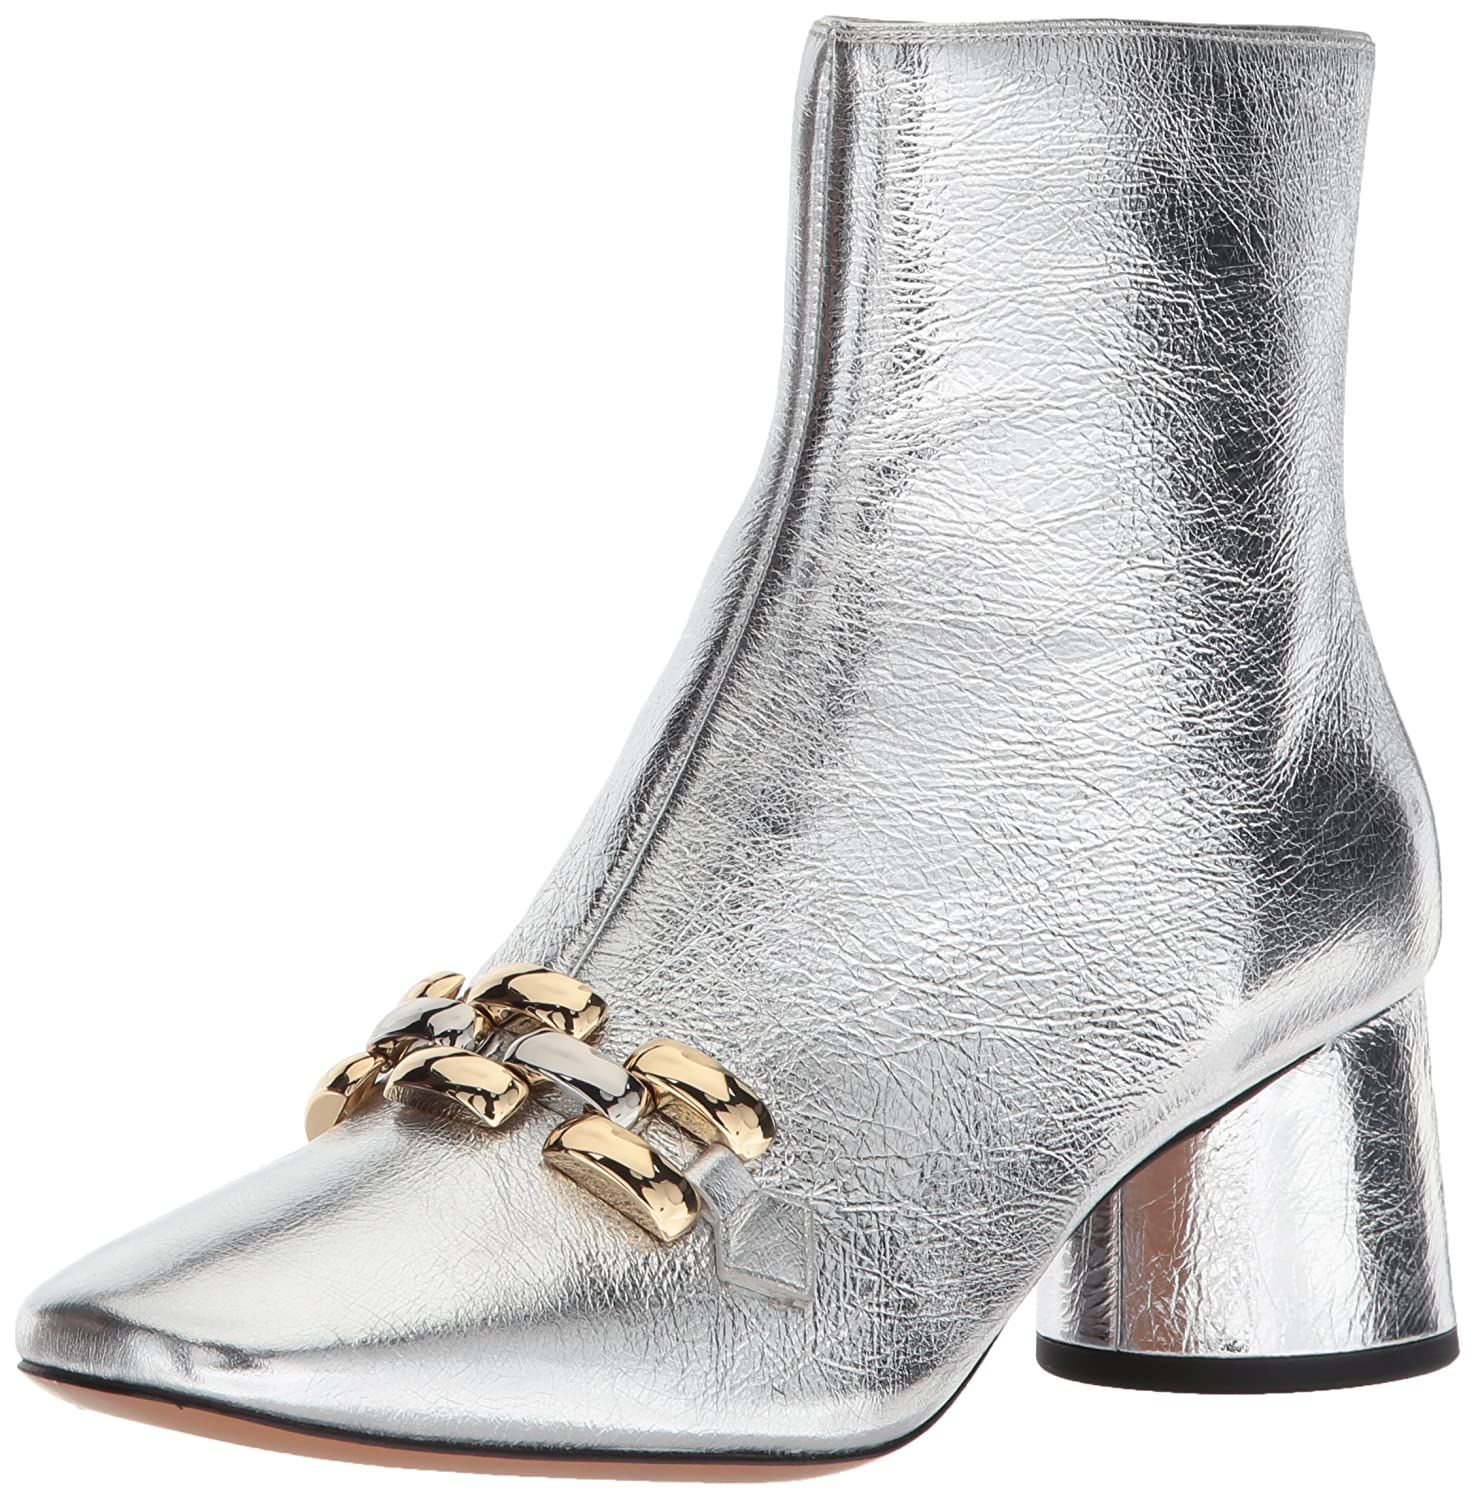 Marc Jacobs Women's Remi Chain Link Ankle Boot B072KLSS93 37 M EU (7 US)|Silver